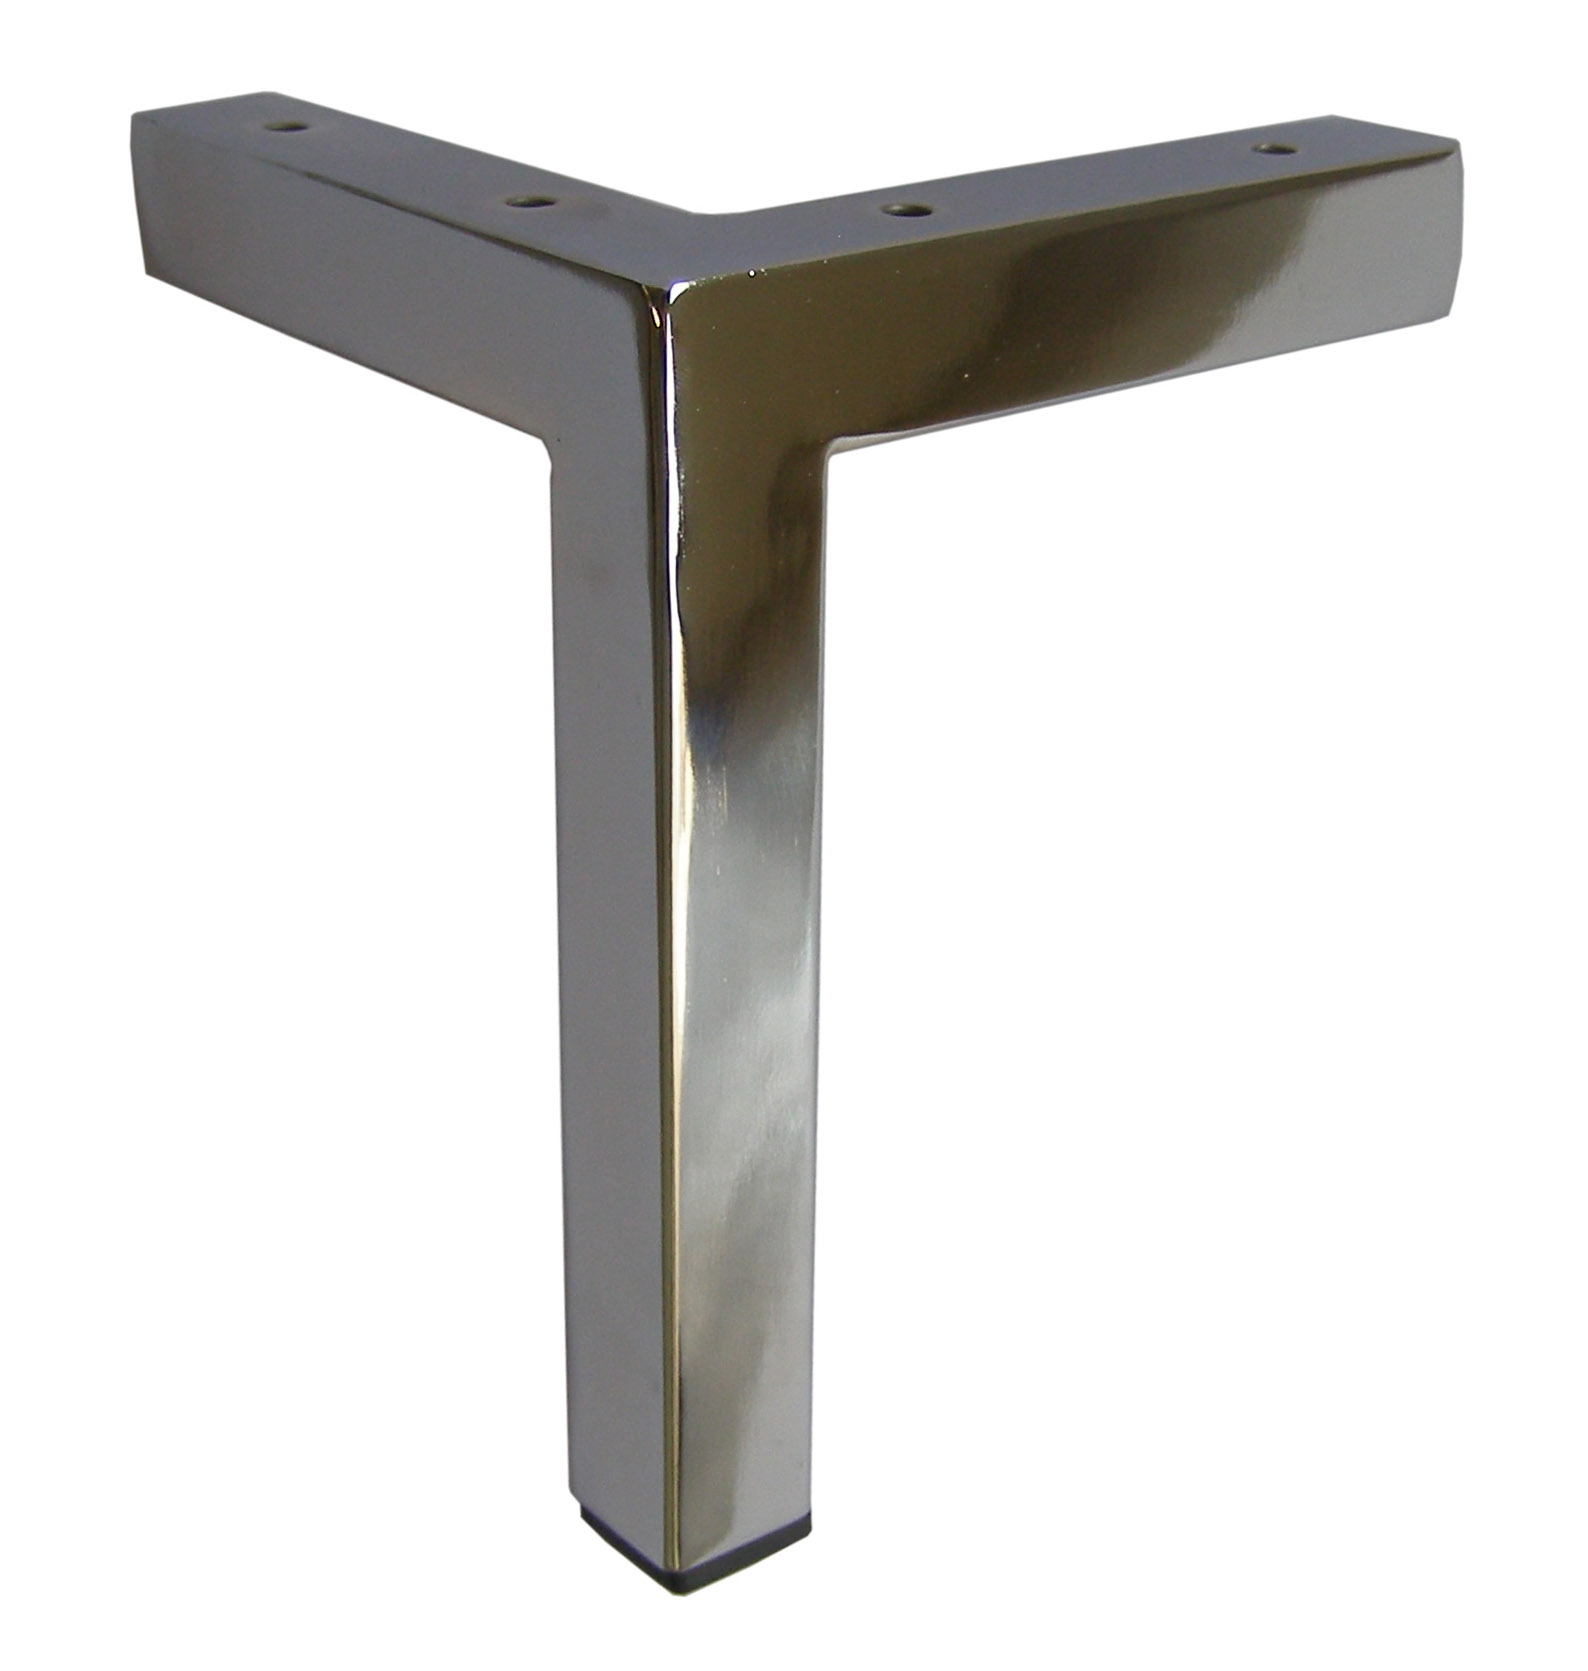 Metal Furniture Leg, Metal Feet,7u2033H L Top Chrome Square Leg 801 1 7